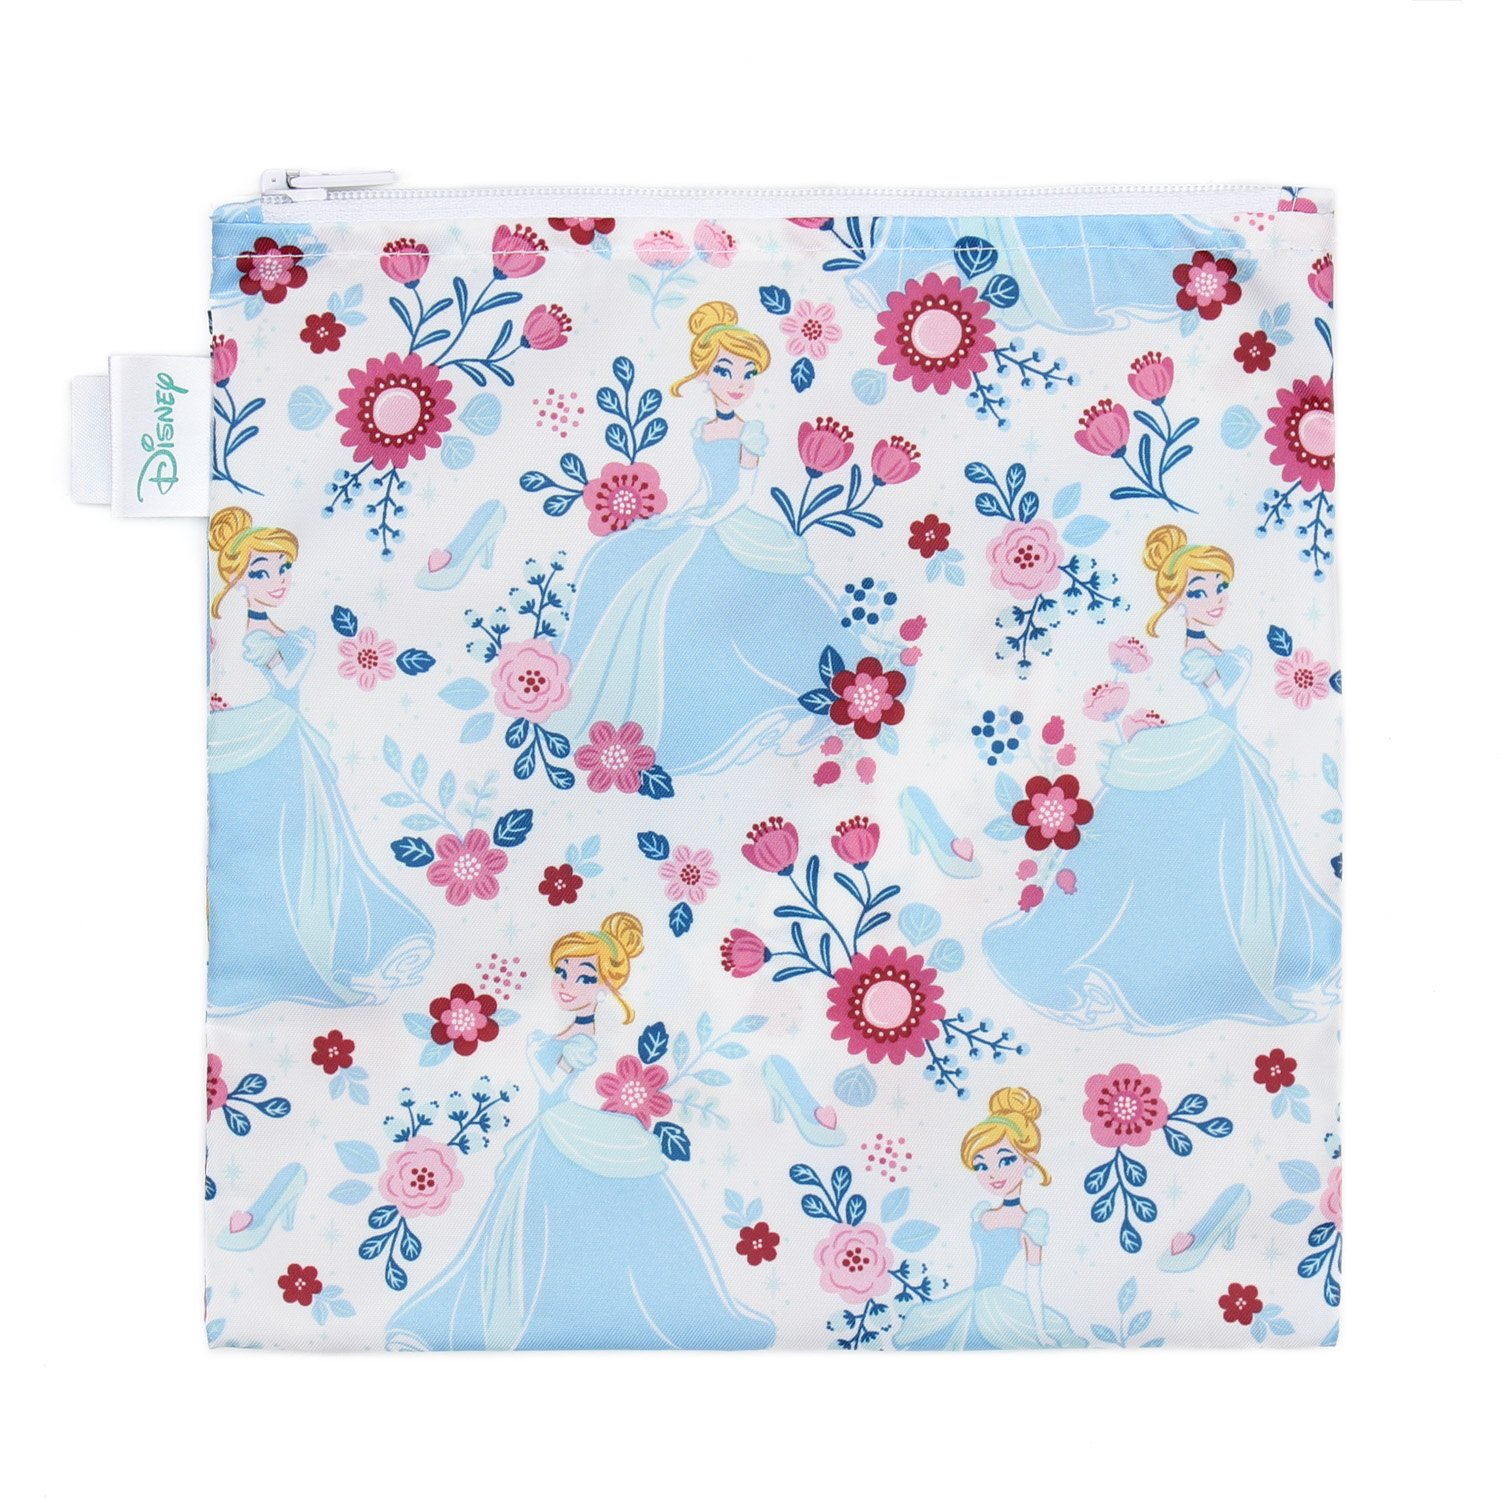 Bumkins Disney Baby Reusable Snack Bag Large, Cinderella SBL-DPR65